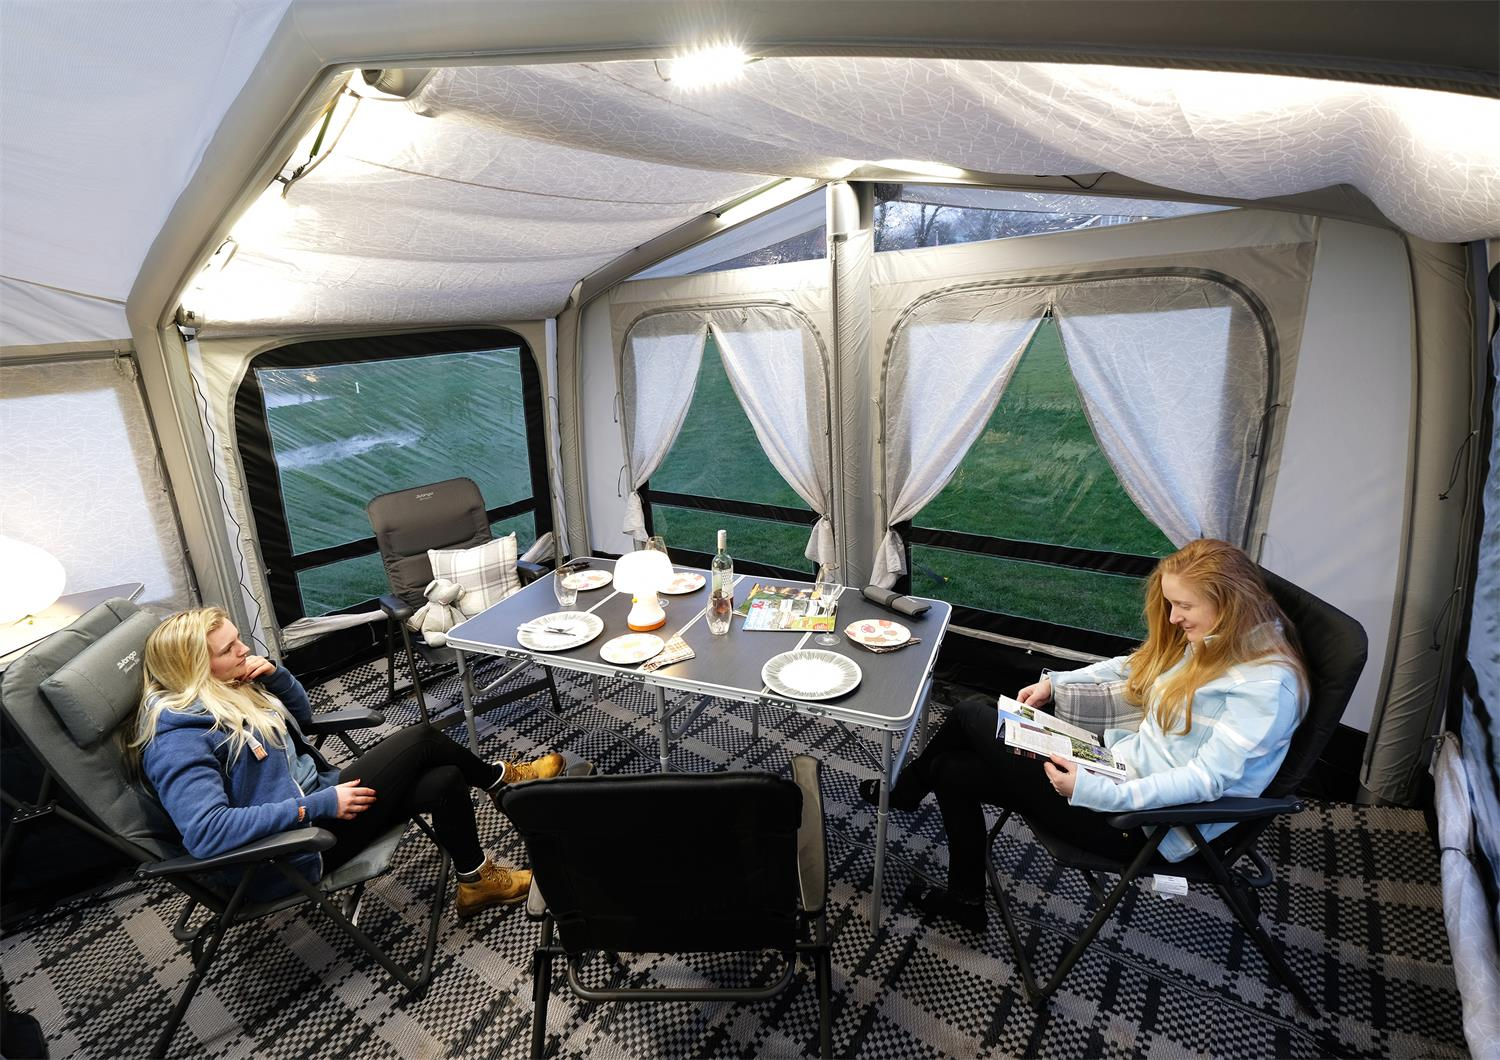 Vango's Montelena Caravan Awning with its tall profile gives you tonnes of space and really creates a wonderful airy feel.